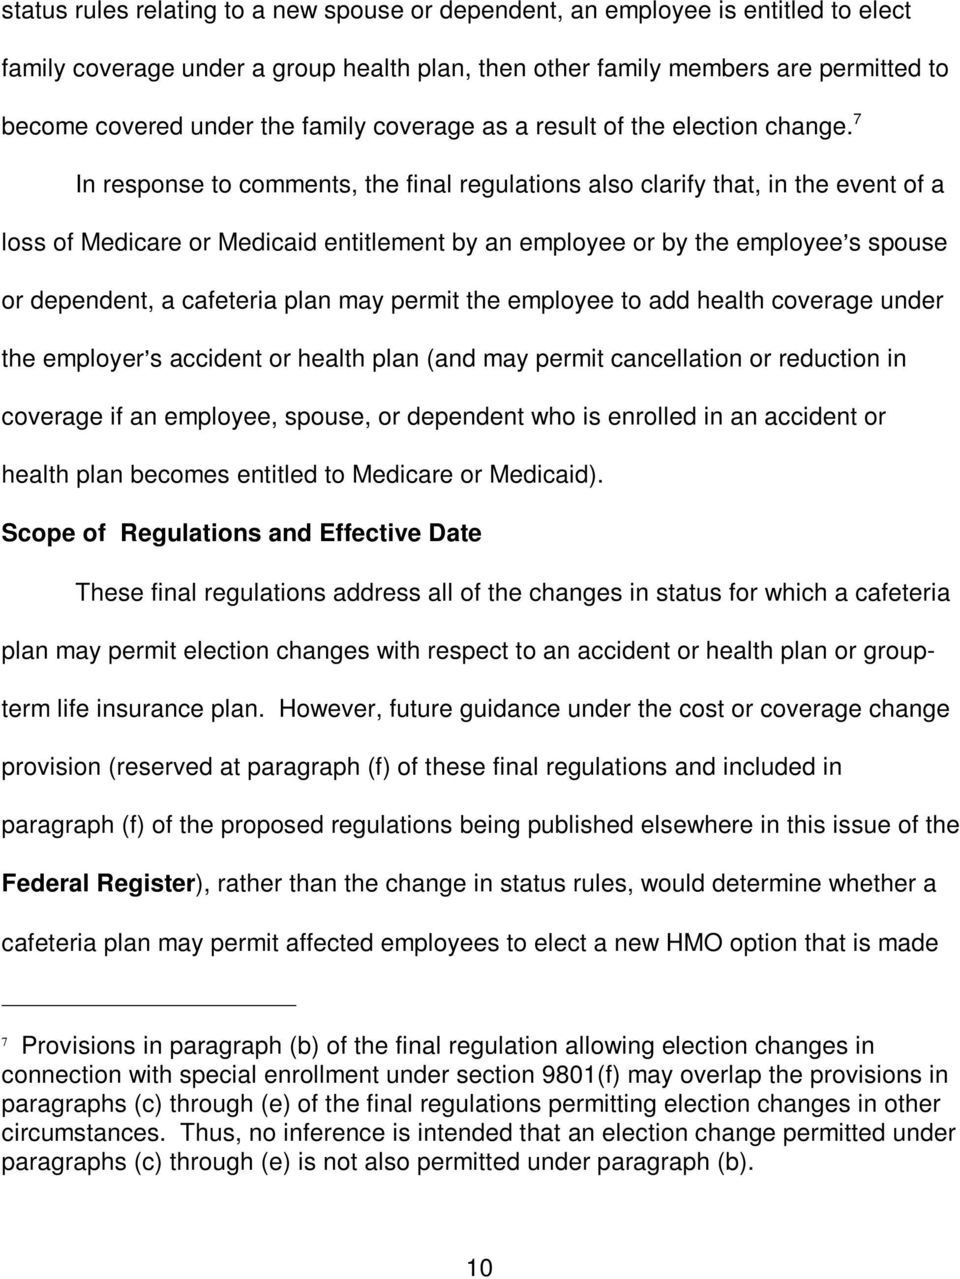 7 In response to comments, the final regulations also clarify that, in the event of a loss of Medicare or Medicaid entitlement by an employee or by the employee=s spouse or dependent, a cafeteria